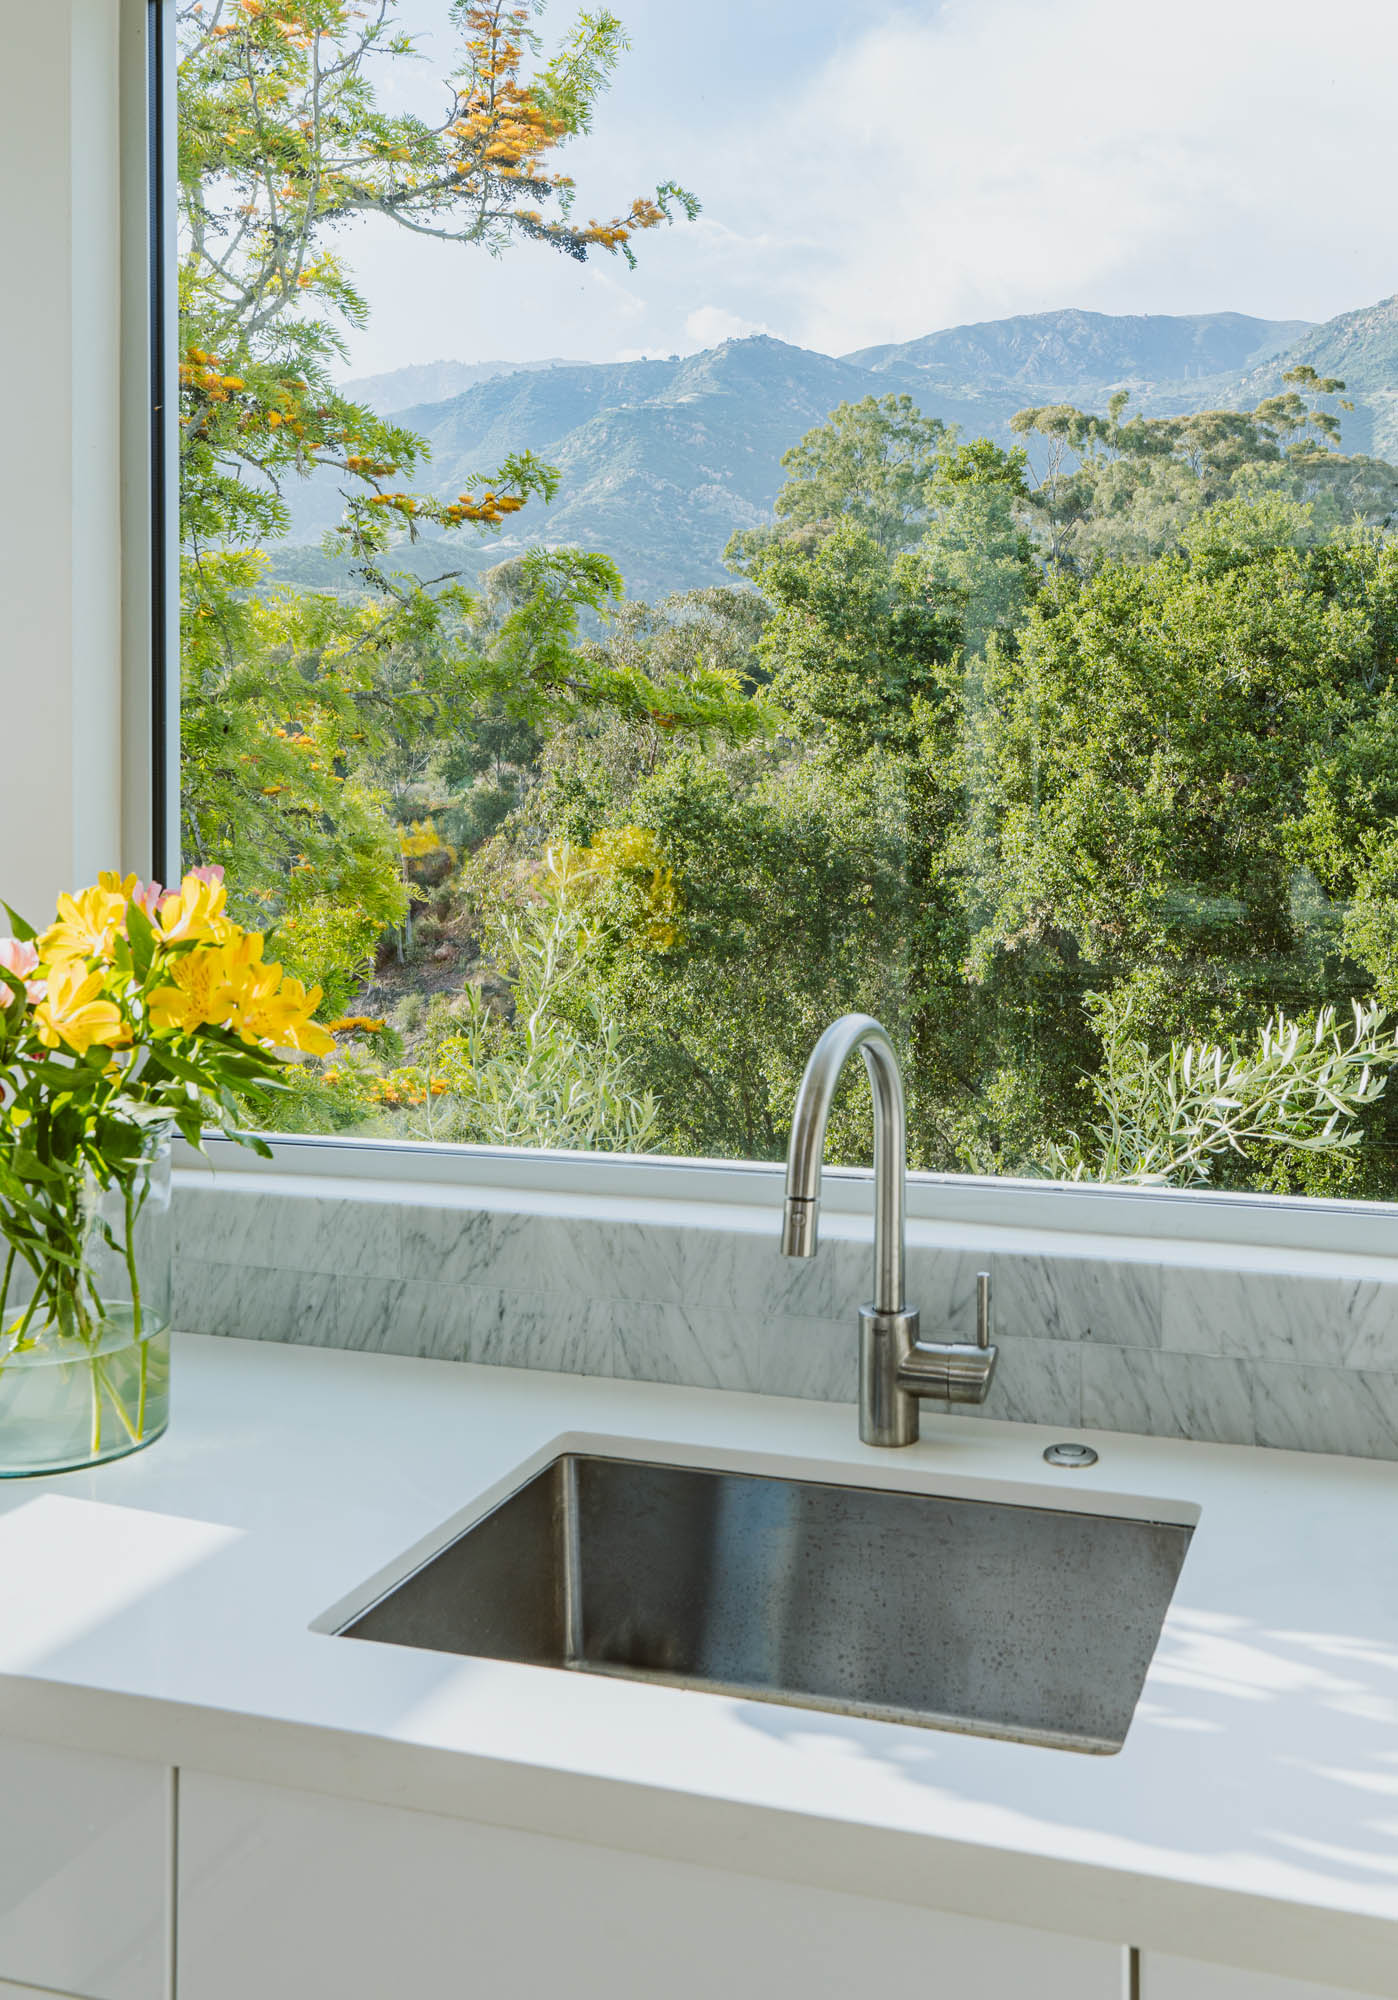 36 Canon View Montecito offered by Riskin Partners Real Estate Group